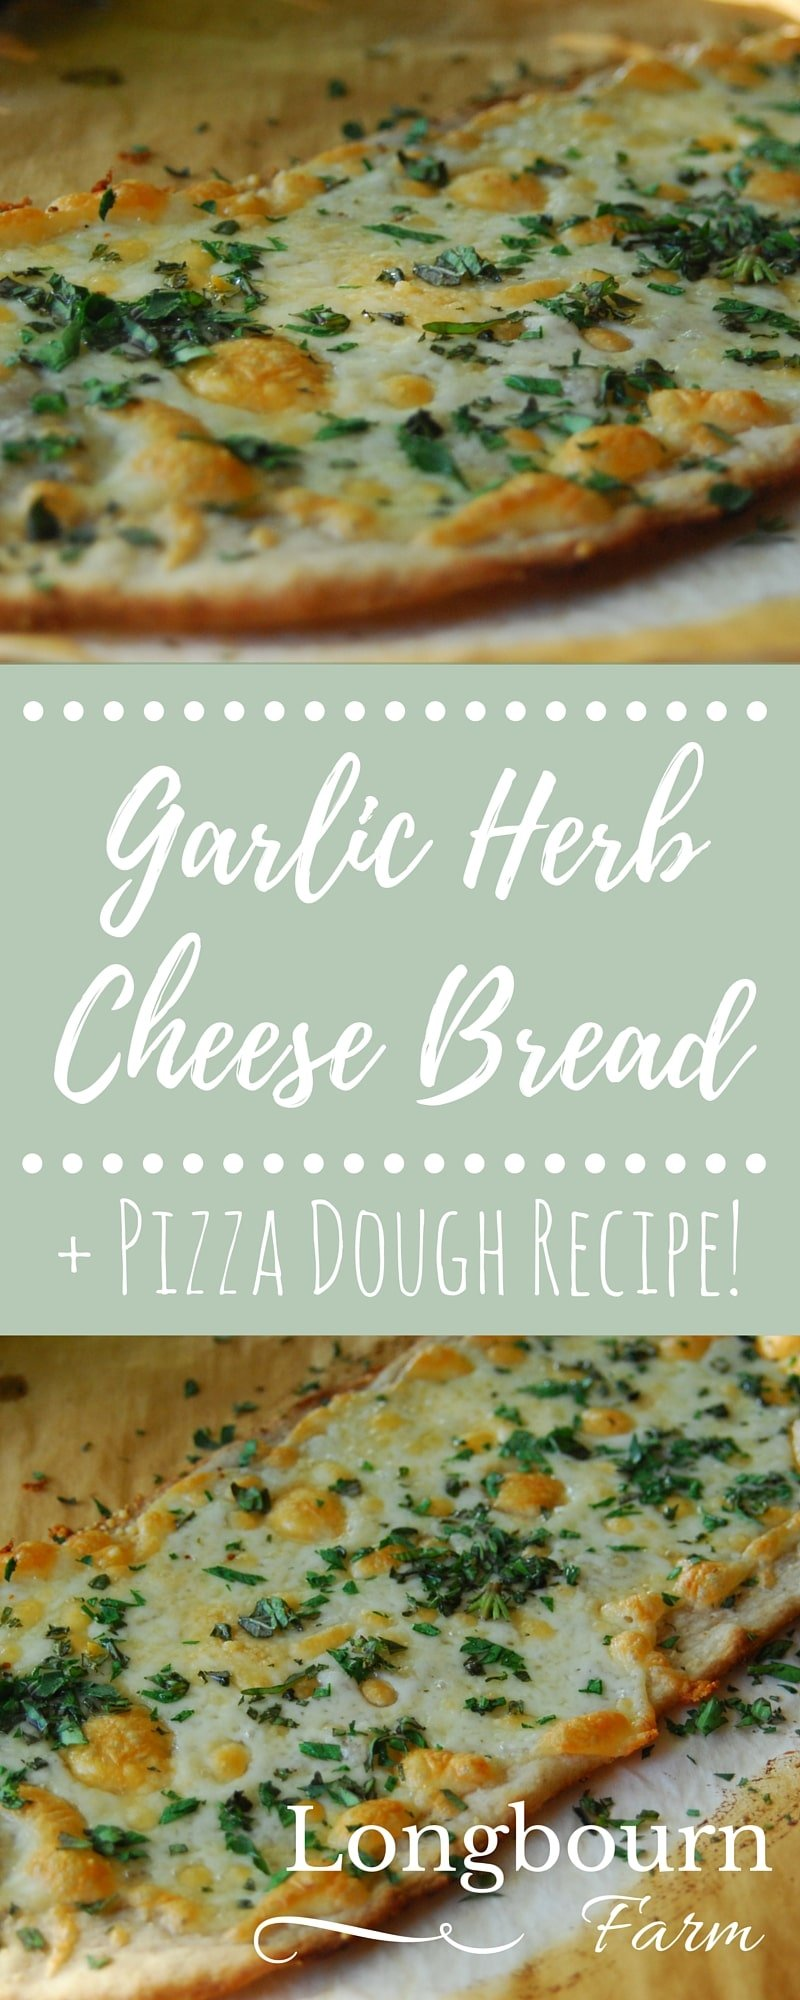 This Garlic Cheese Bread is homemade, freezer friendly, and packed with flavor. It is a showstopper side for any pizza, pasta, or salad. via @longbournfarm